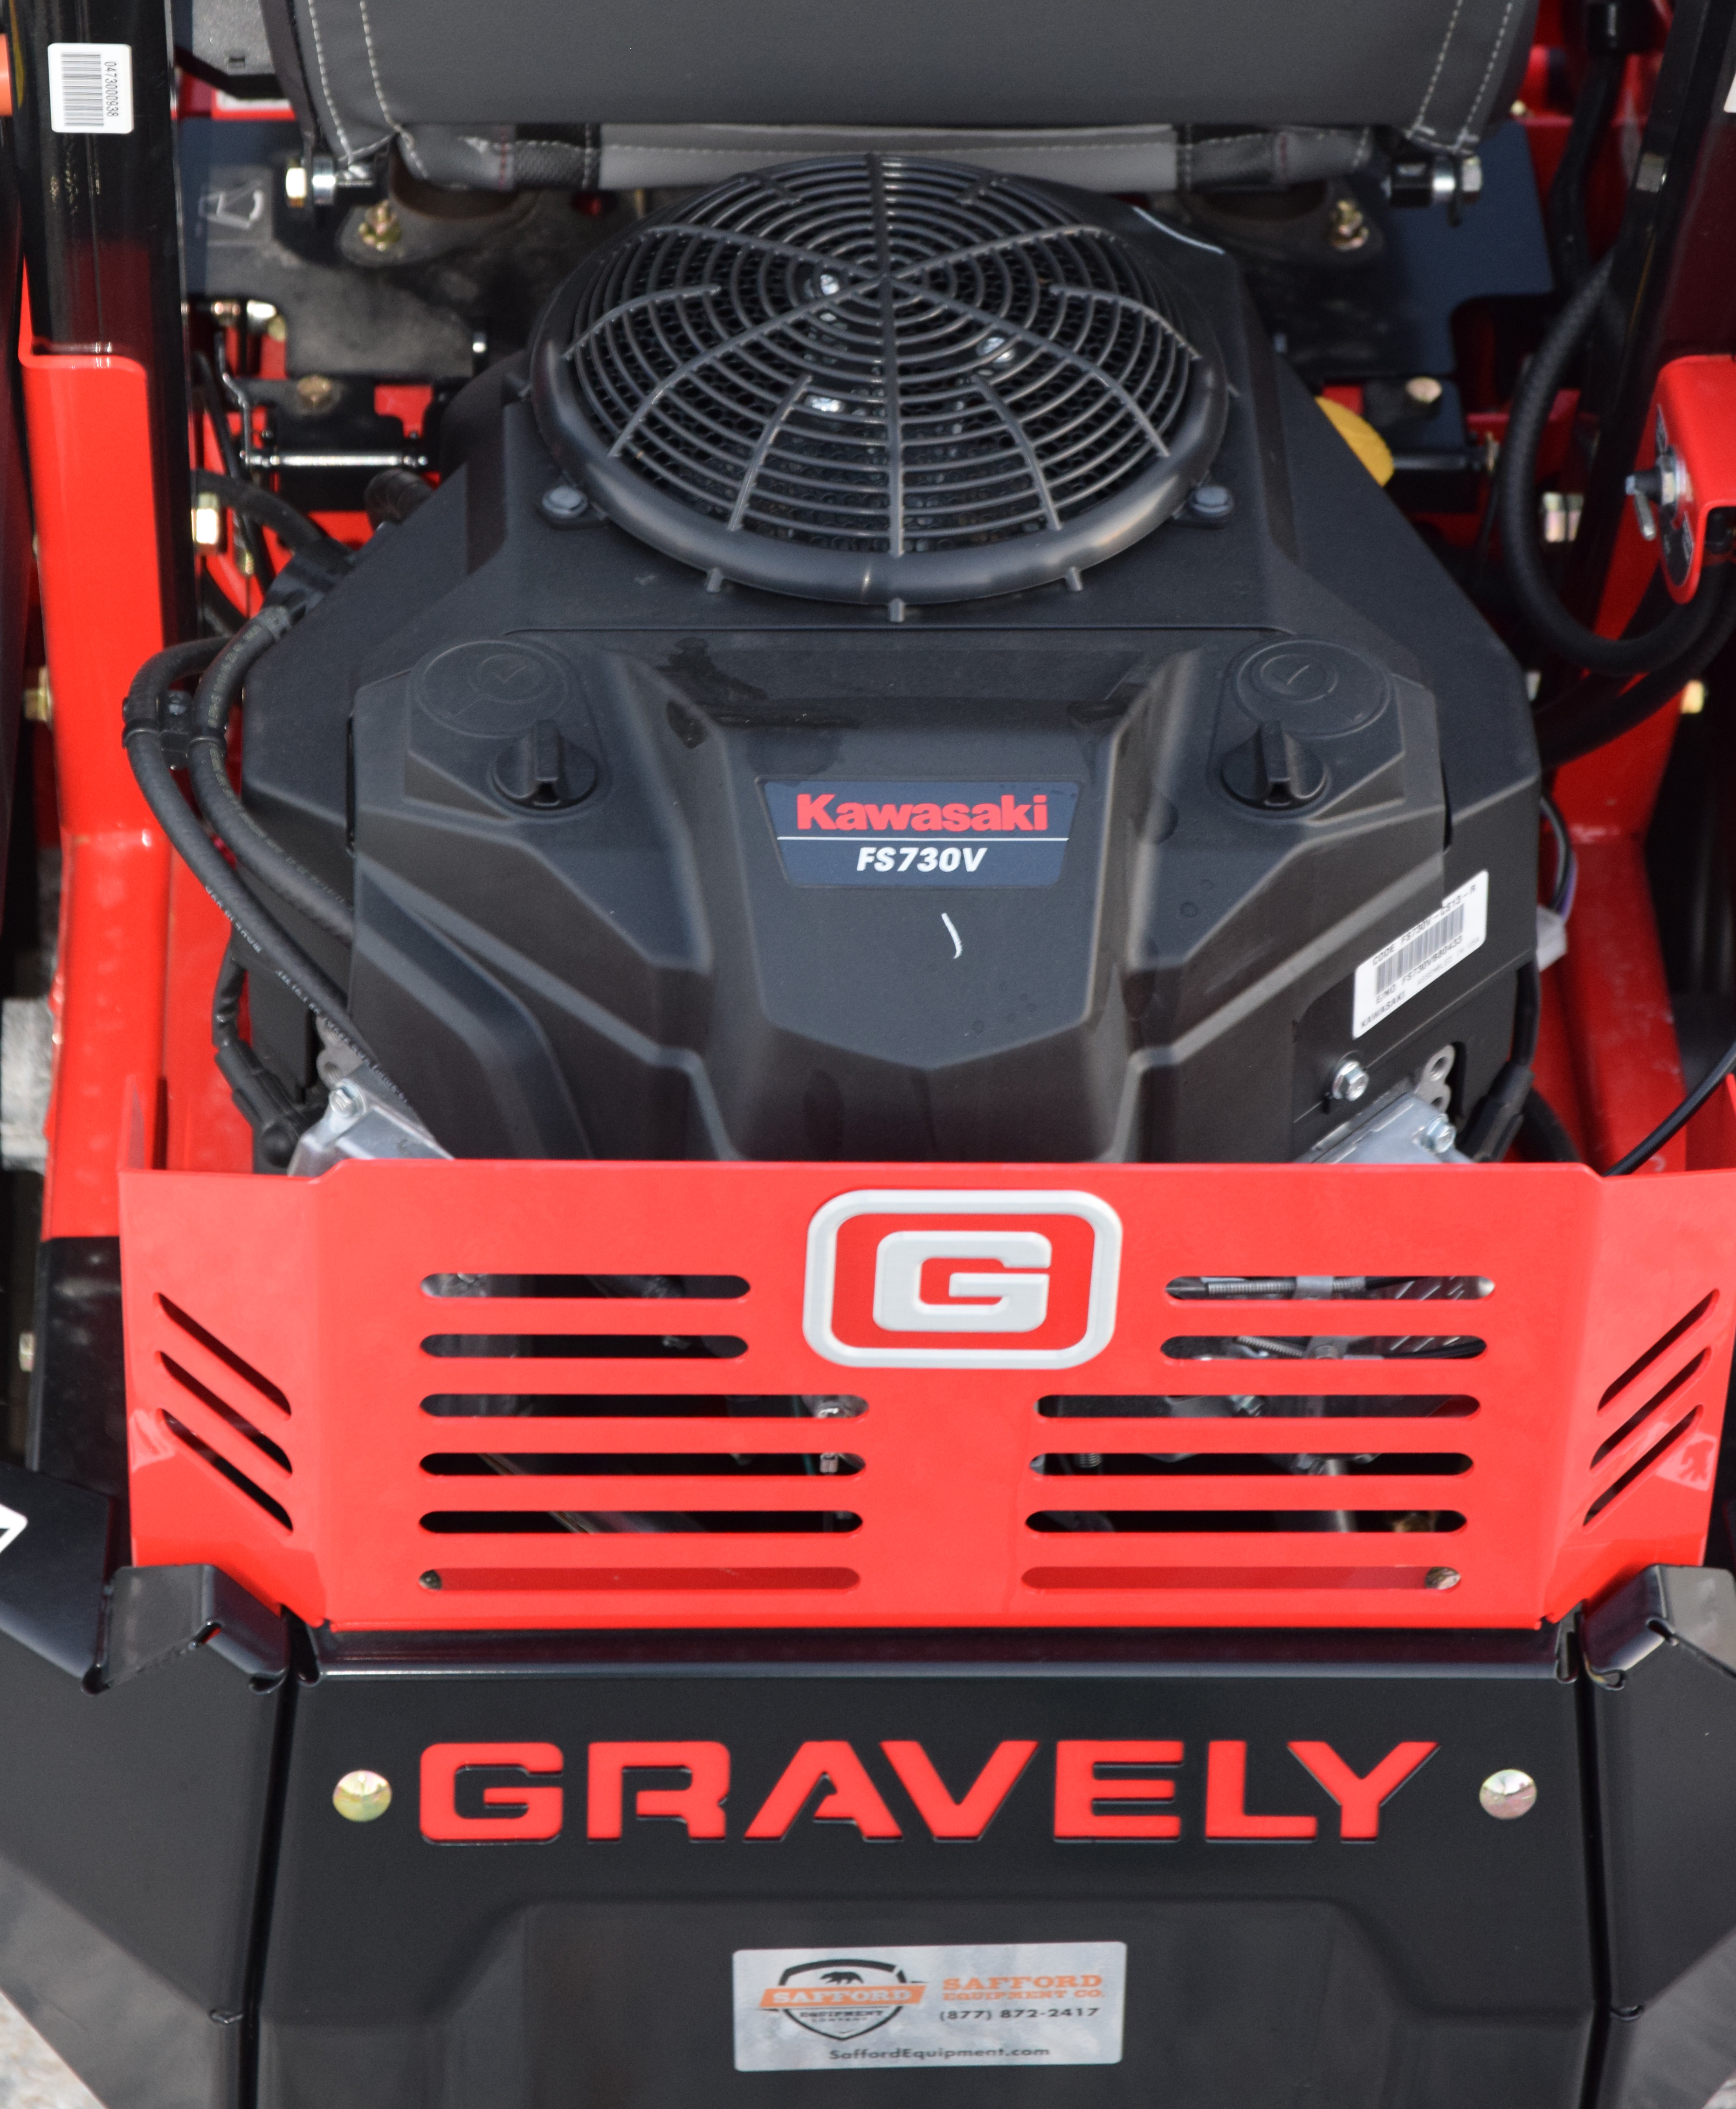 Gravely Pro-Turn 60 Zero Turn Mower (Kawasaki) | Safford Equipment